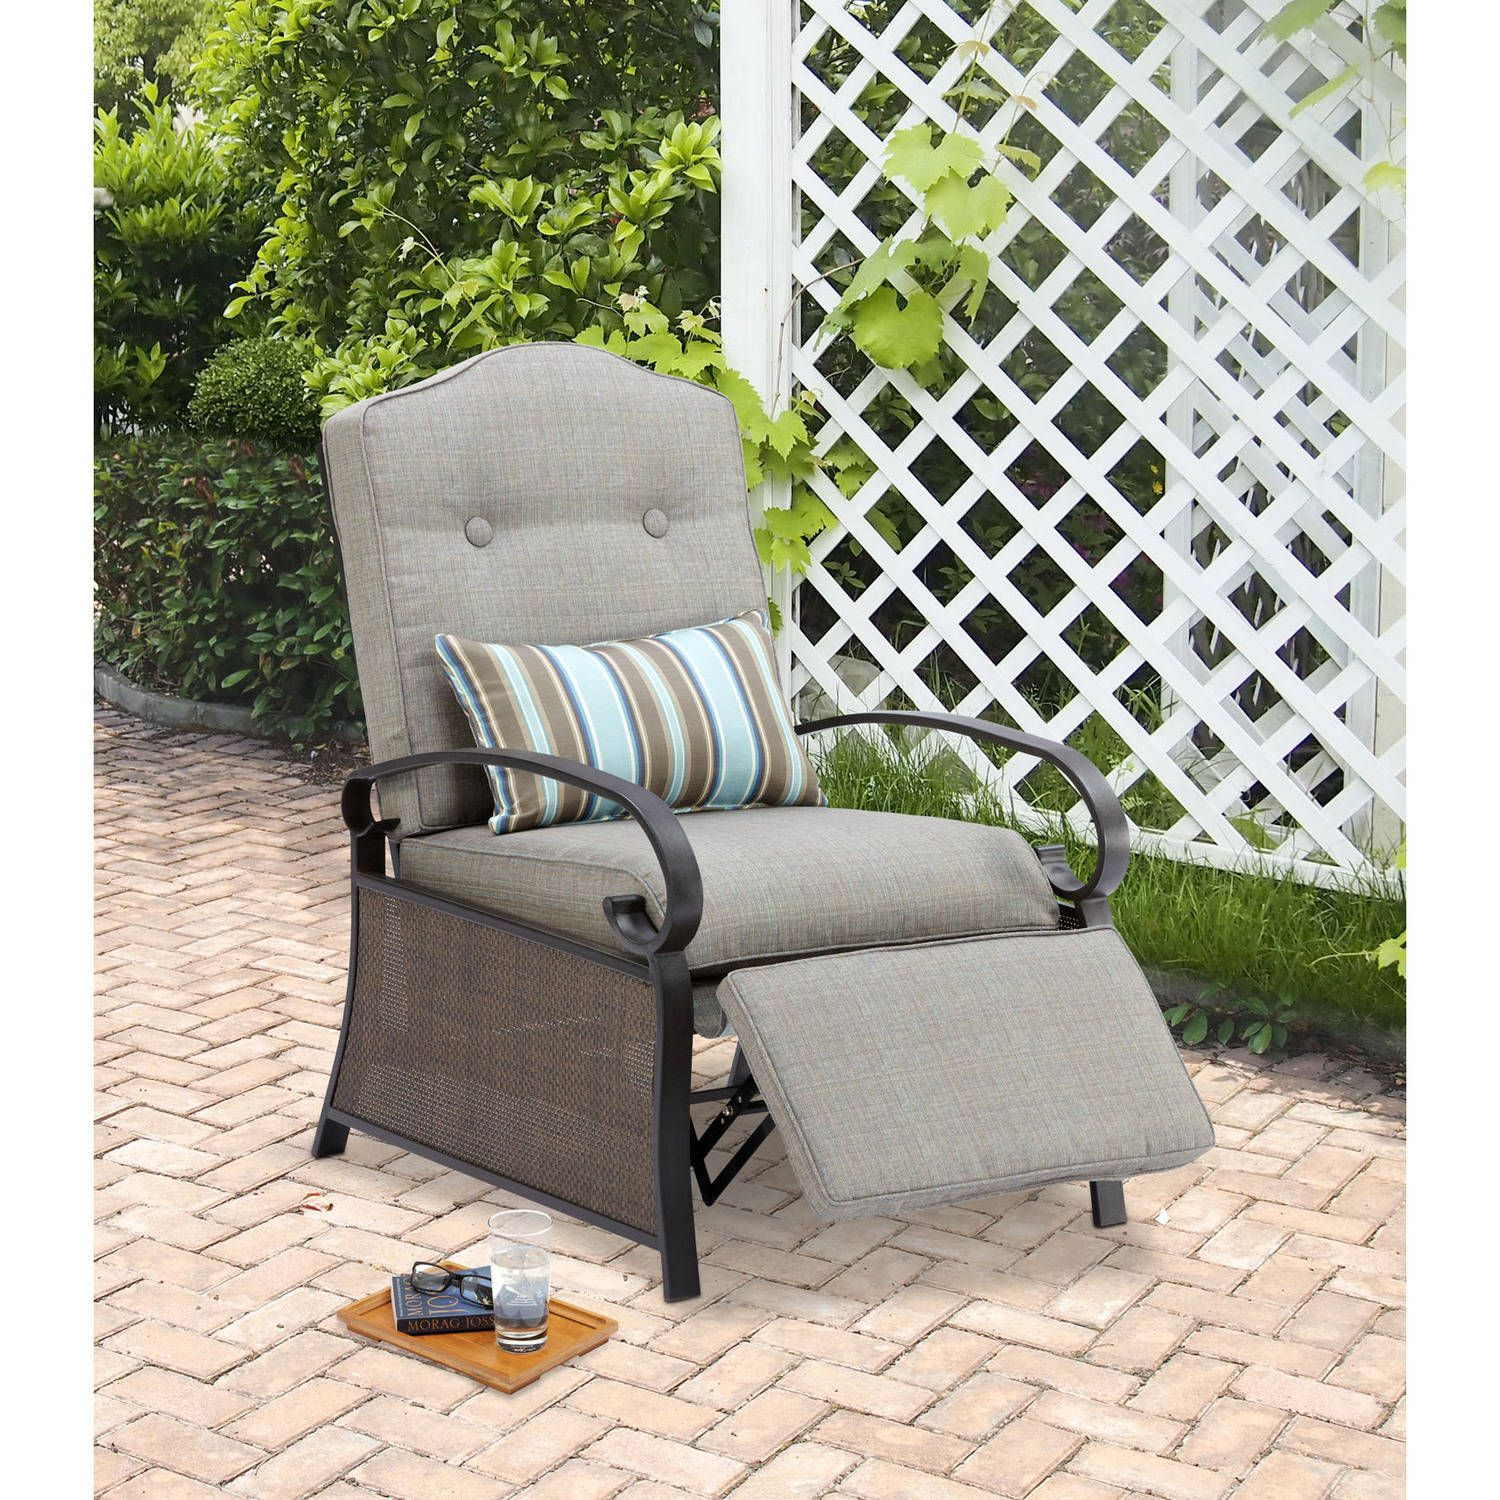 Make The Most Of Your Leisure Time With The Mainstays Outdoor Recliner. The  Seat Features Adjustable Positions And Weather Resistant Cushions.